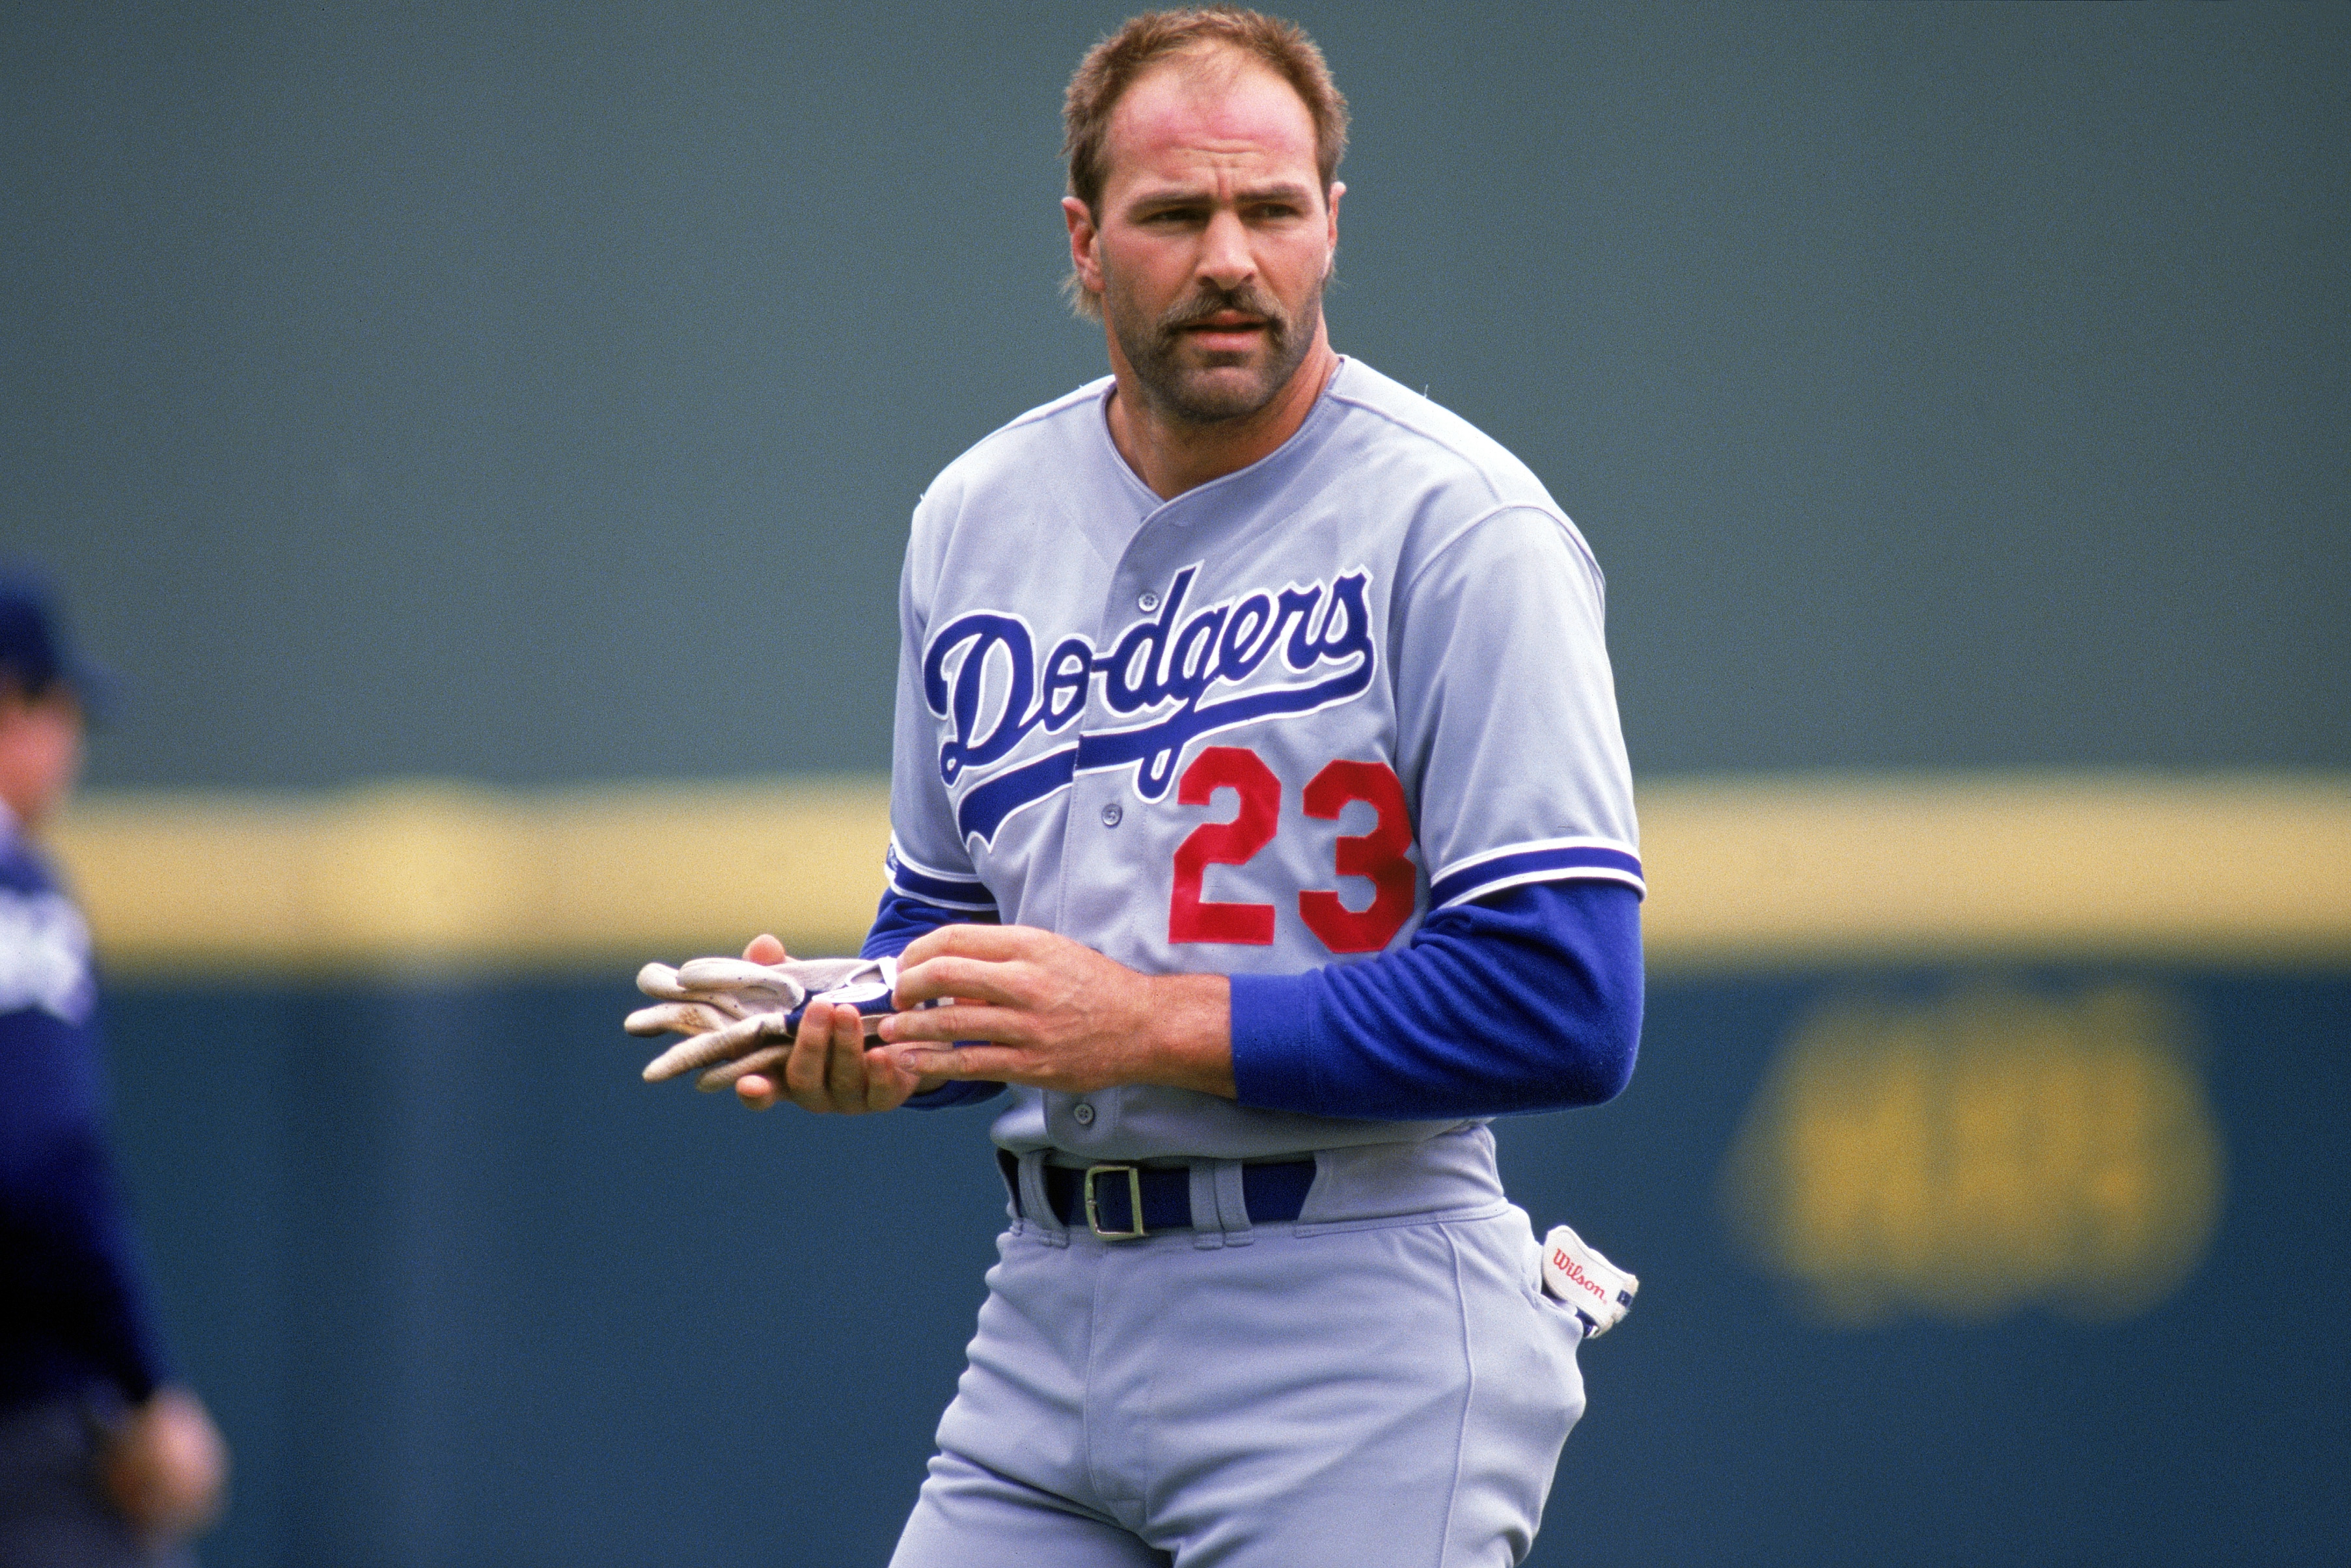 SAN DIEGO - 1988:  Outfielder Kirk Gibson #23 of the Los Angeles Dodgers with his helmet off during a 1988 season game against the San Diego Padres at Jack Murphy Stadium in San Diego, California.  (Photo by Stephen Dunn/Getty Images)